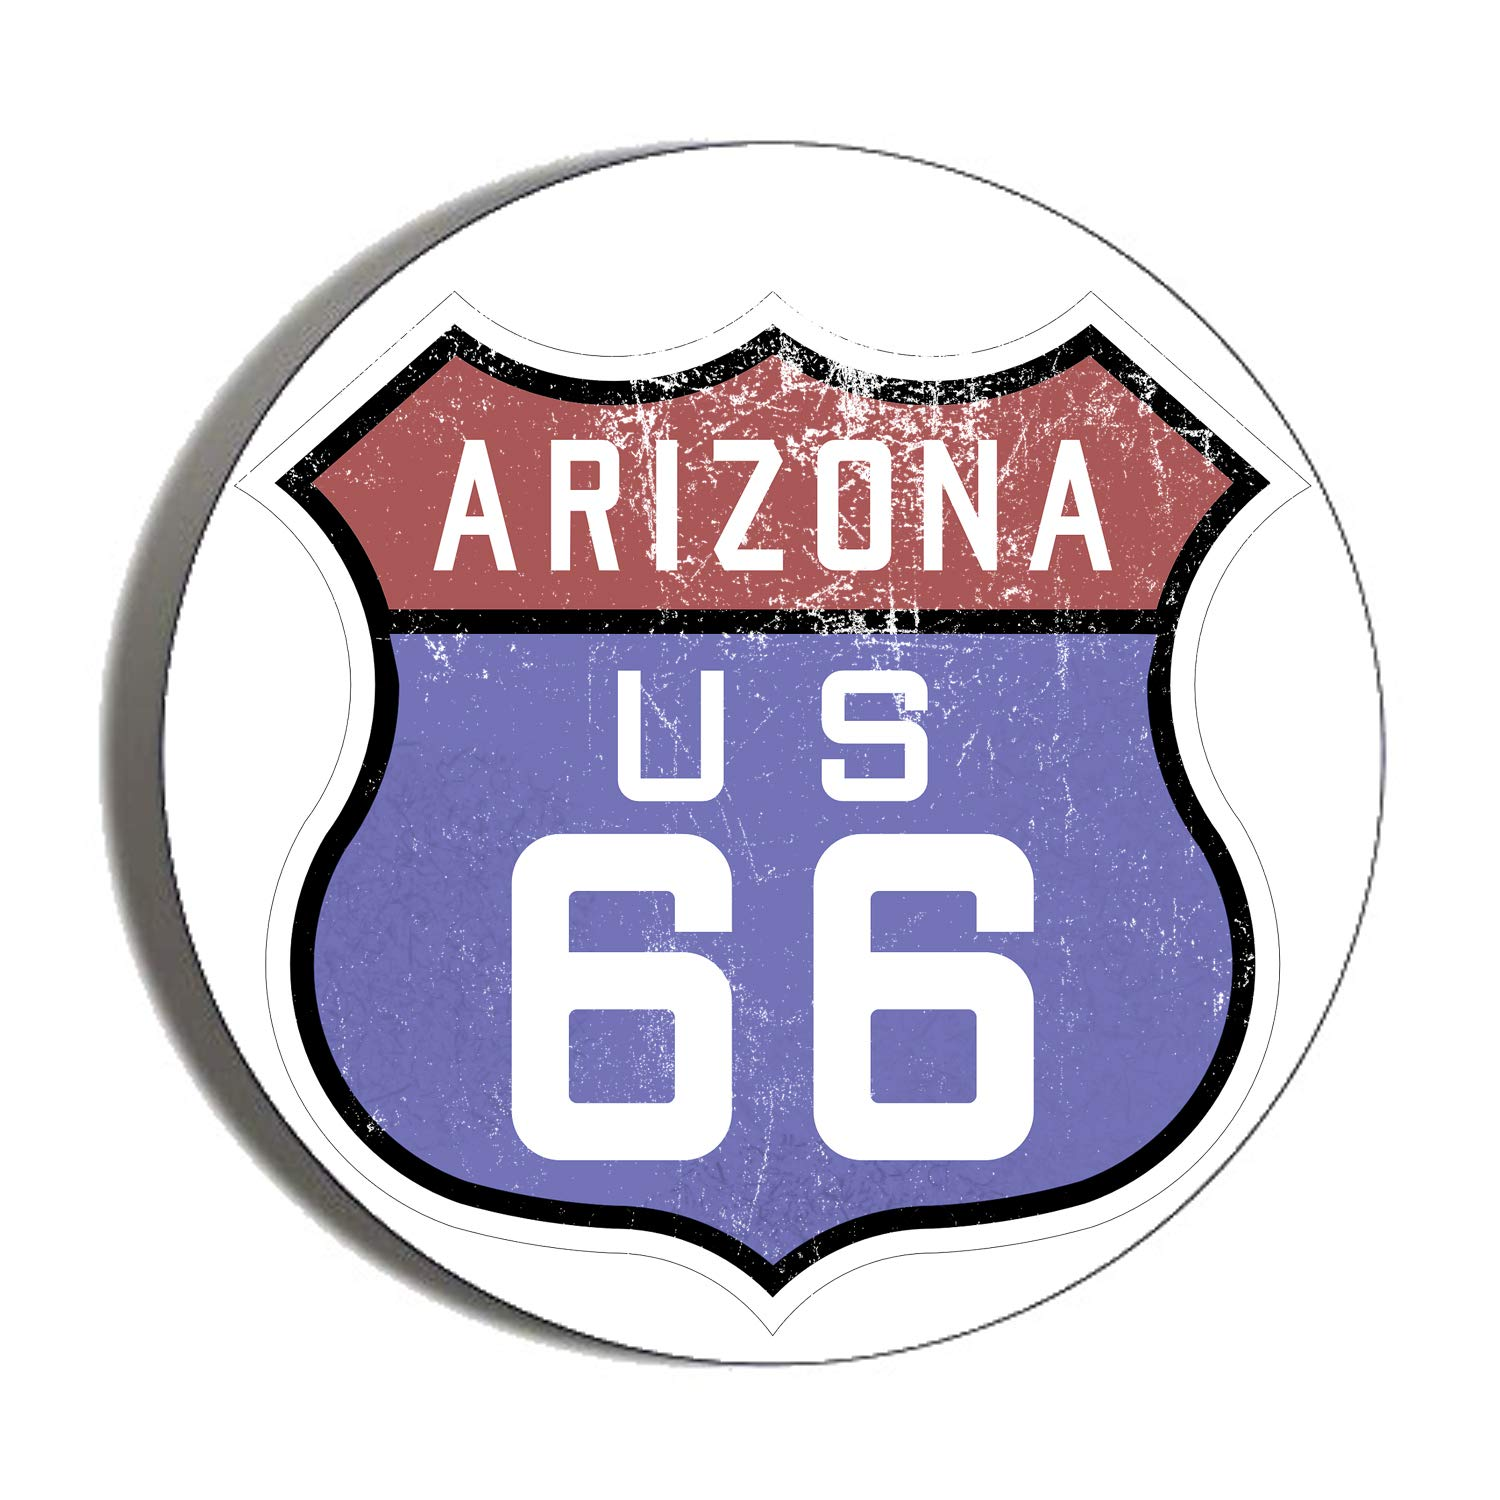 Gifts & Gadgets Co. Route 66 Arizona - Imán para Nevera (58 ...